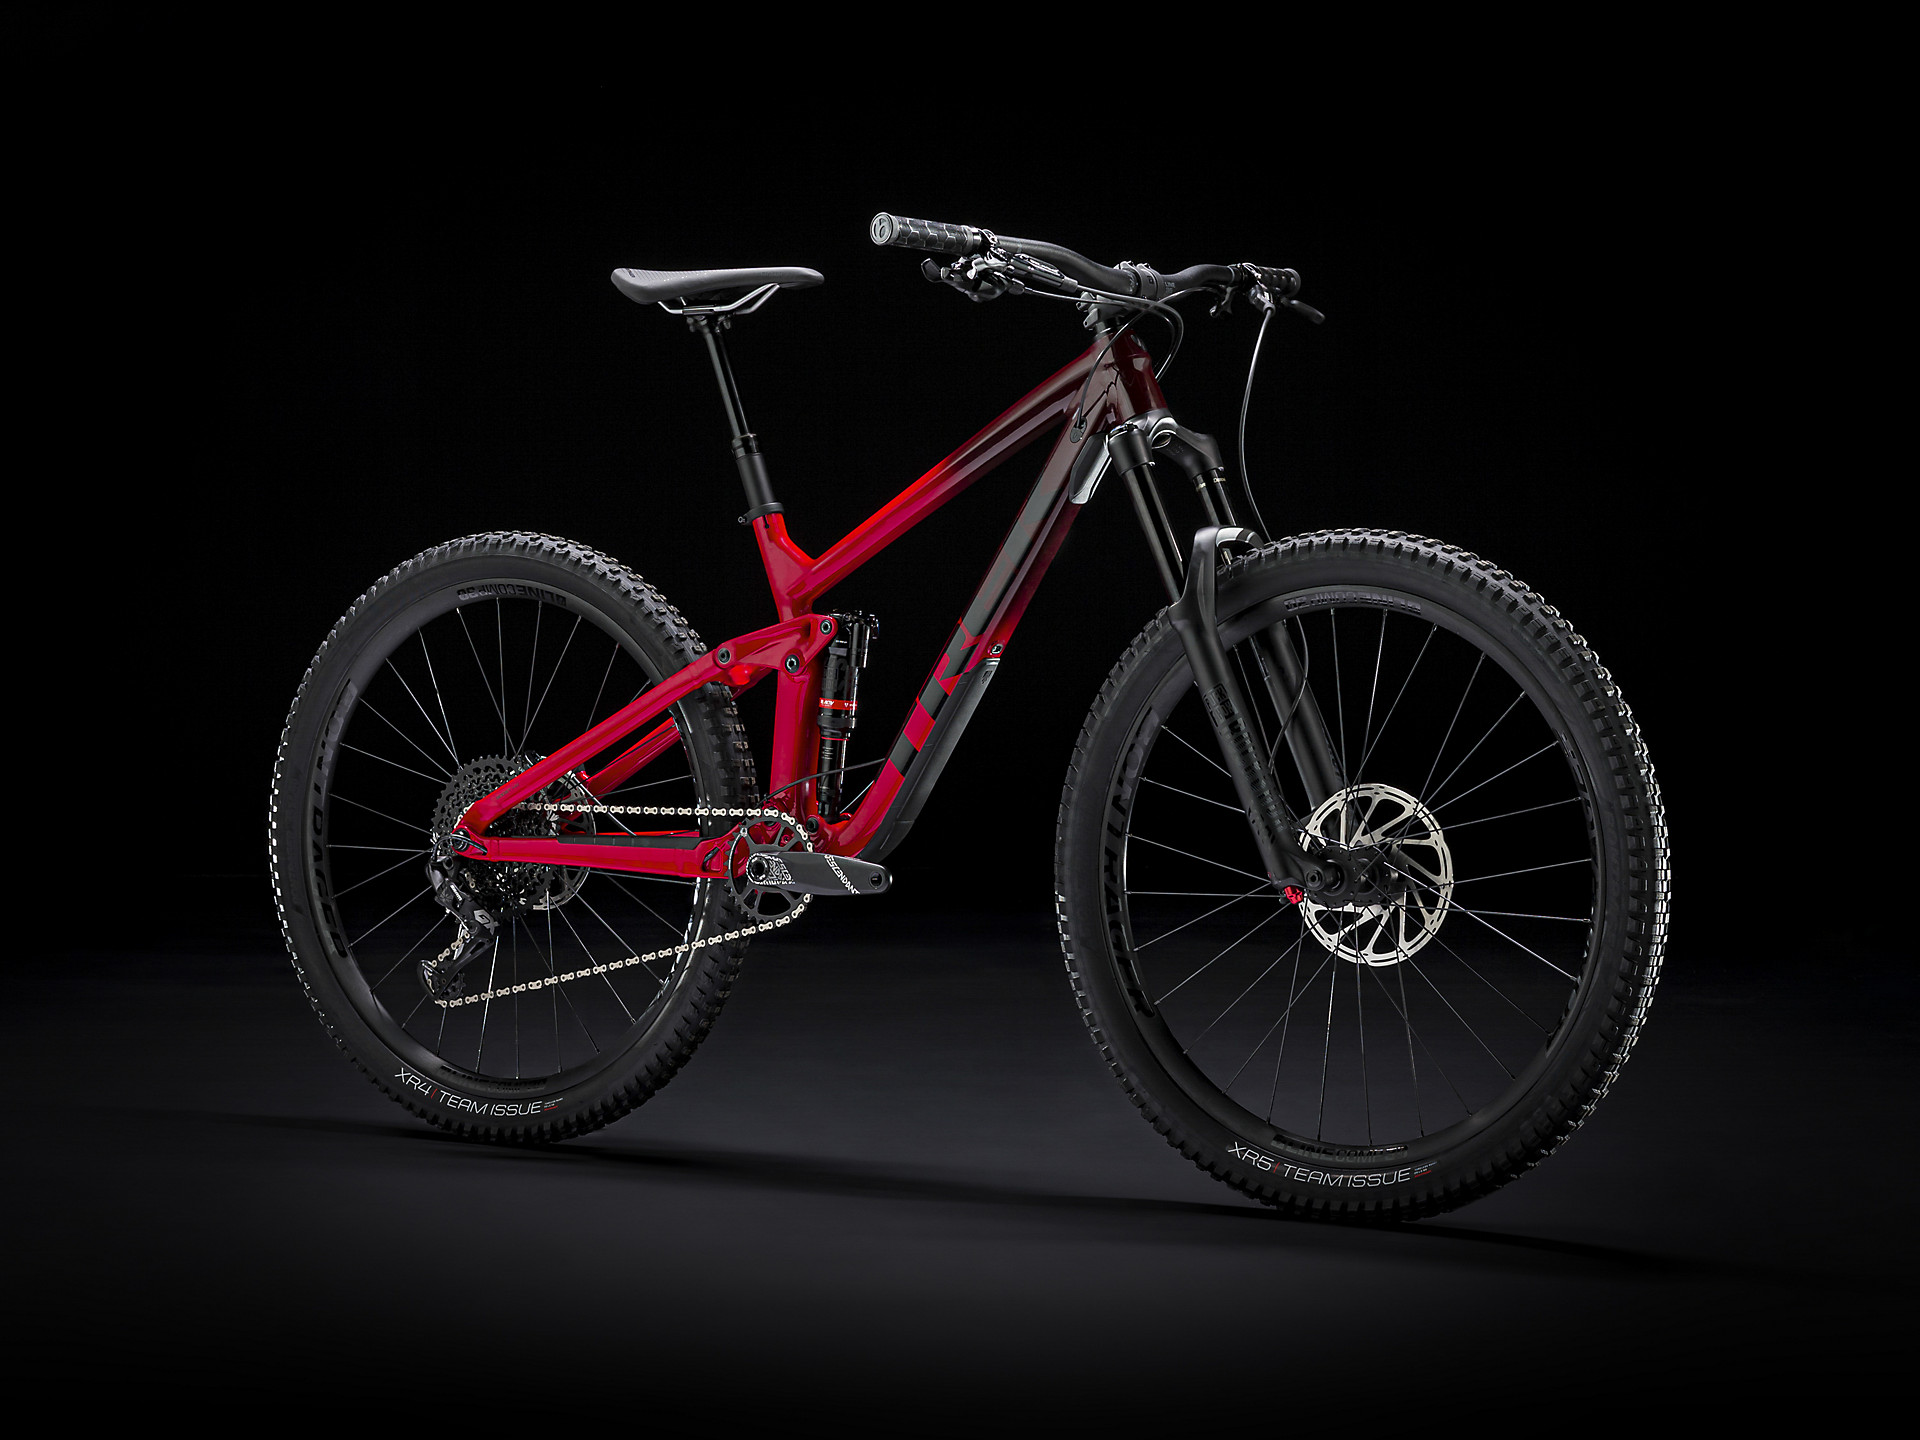 Trek Slash 8 enduro bike